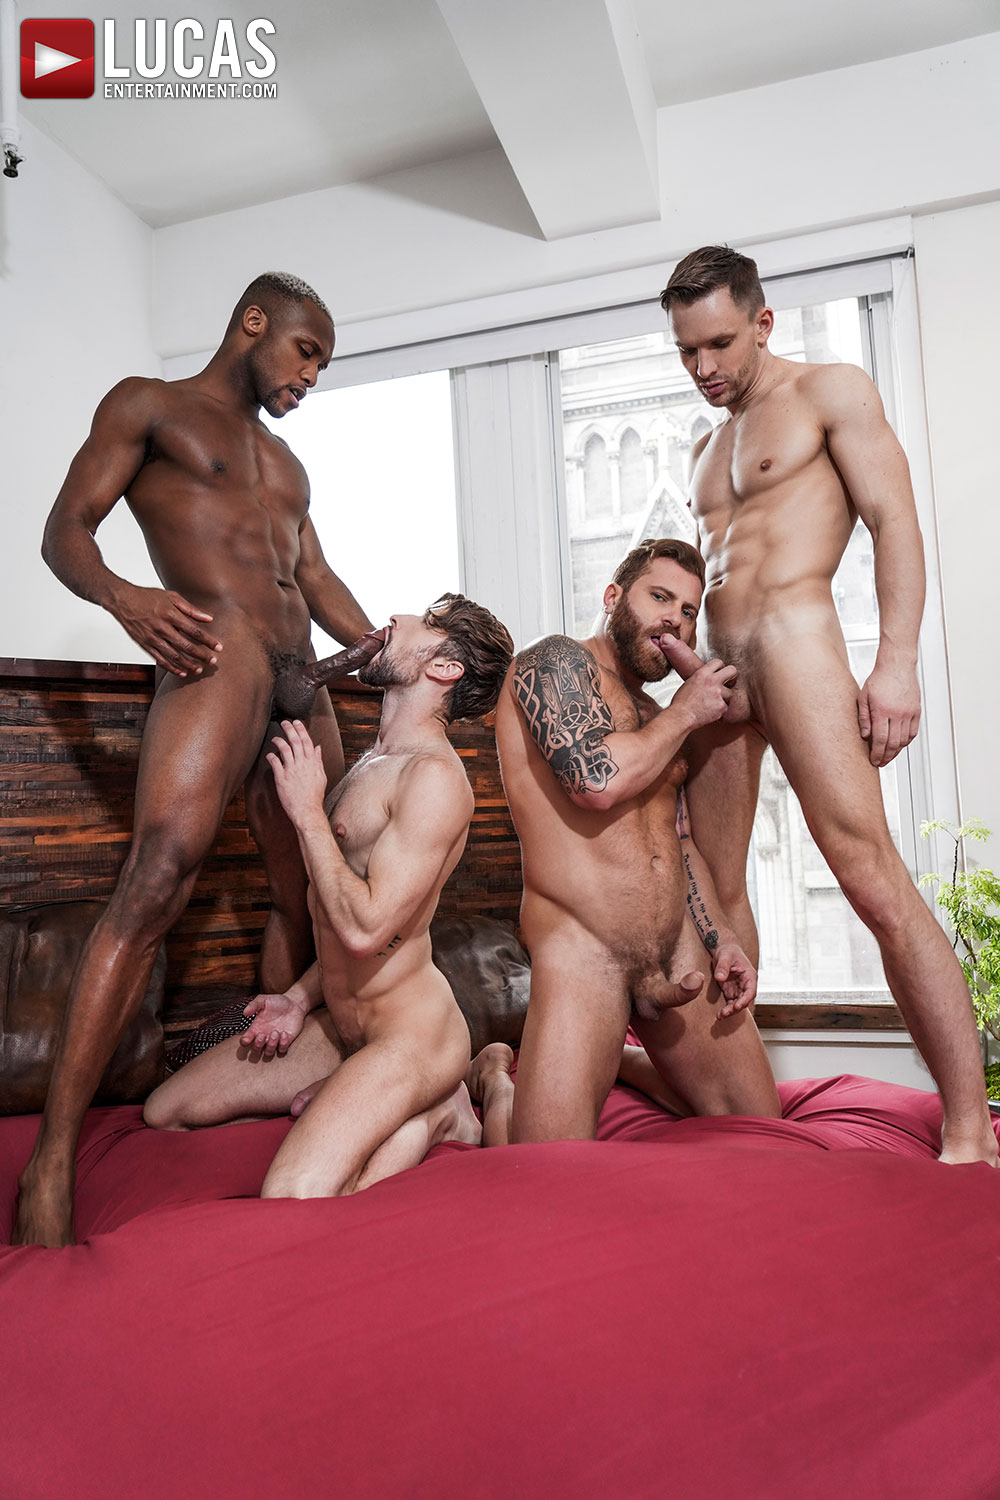 Extreme Double Penetration | Andrey, Drew, Riley, Andre - Gay Movies - Lucas Entertainment